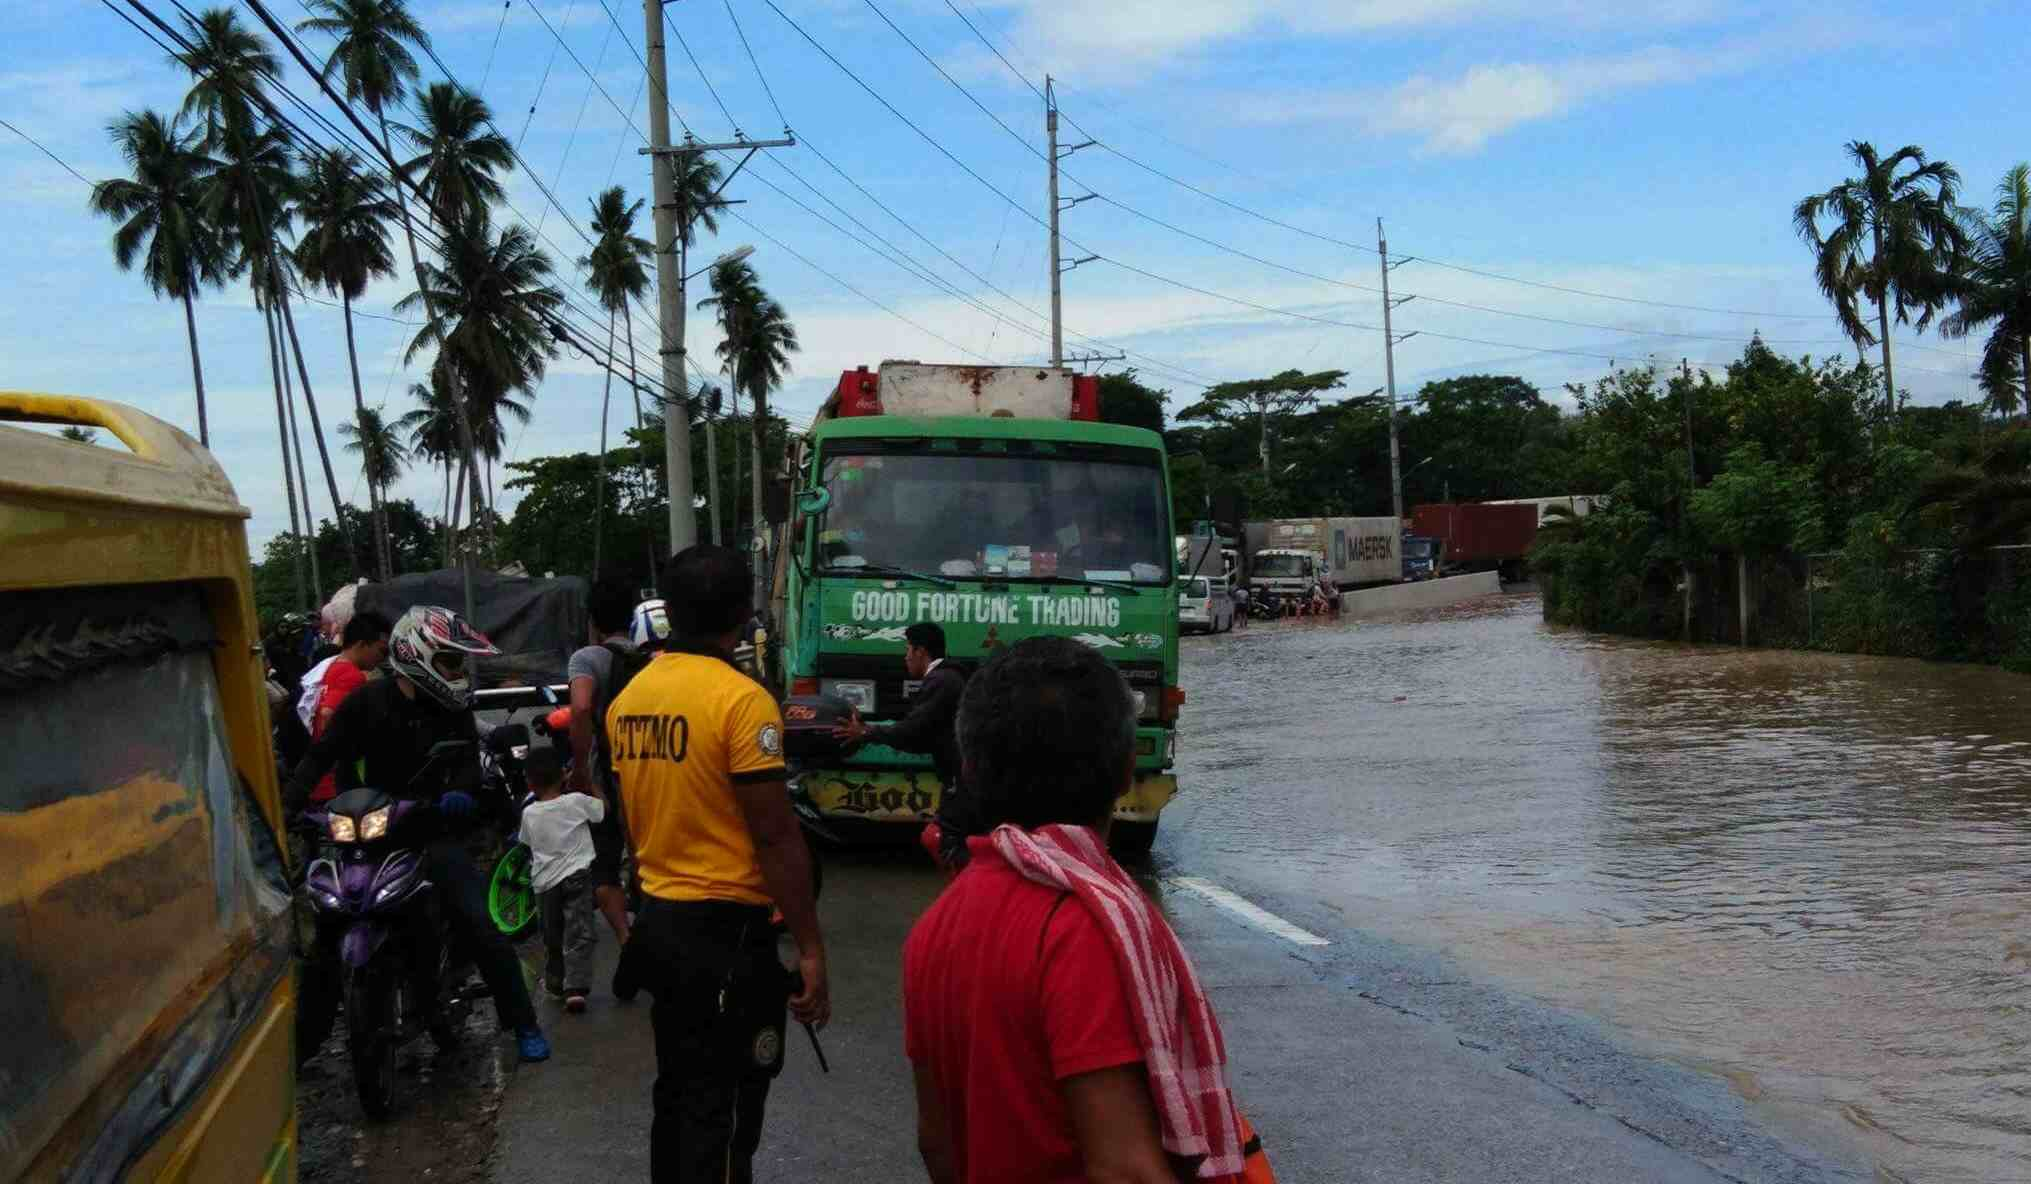 FLOODED ROAD. Heavy rains have flooded roads especially in Bunawan which connects Davao City to Panabo City. Photo by Xtian Joseph Villareal Serrano